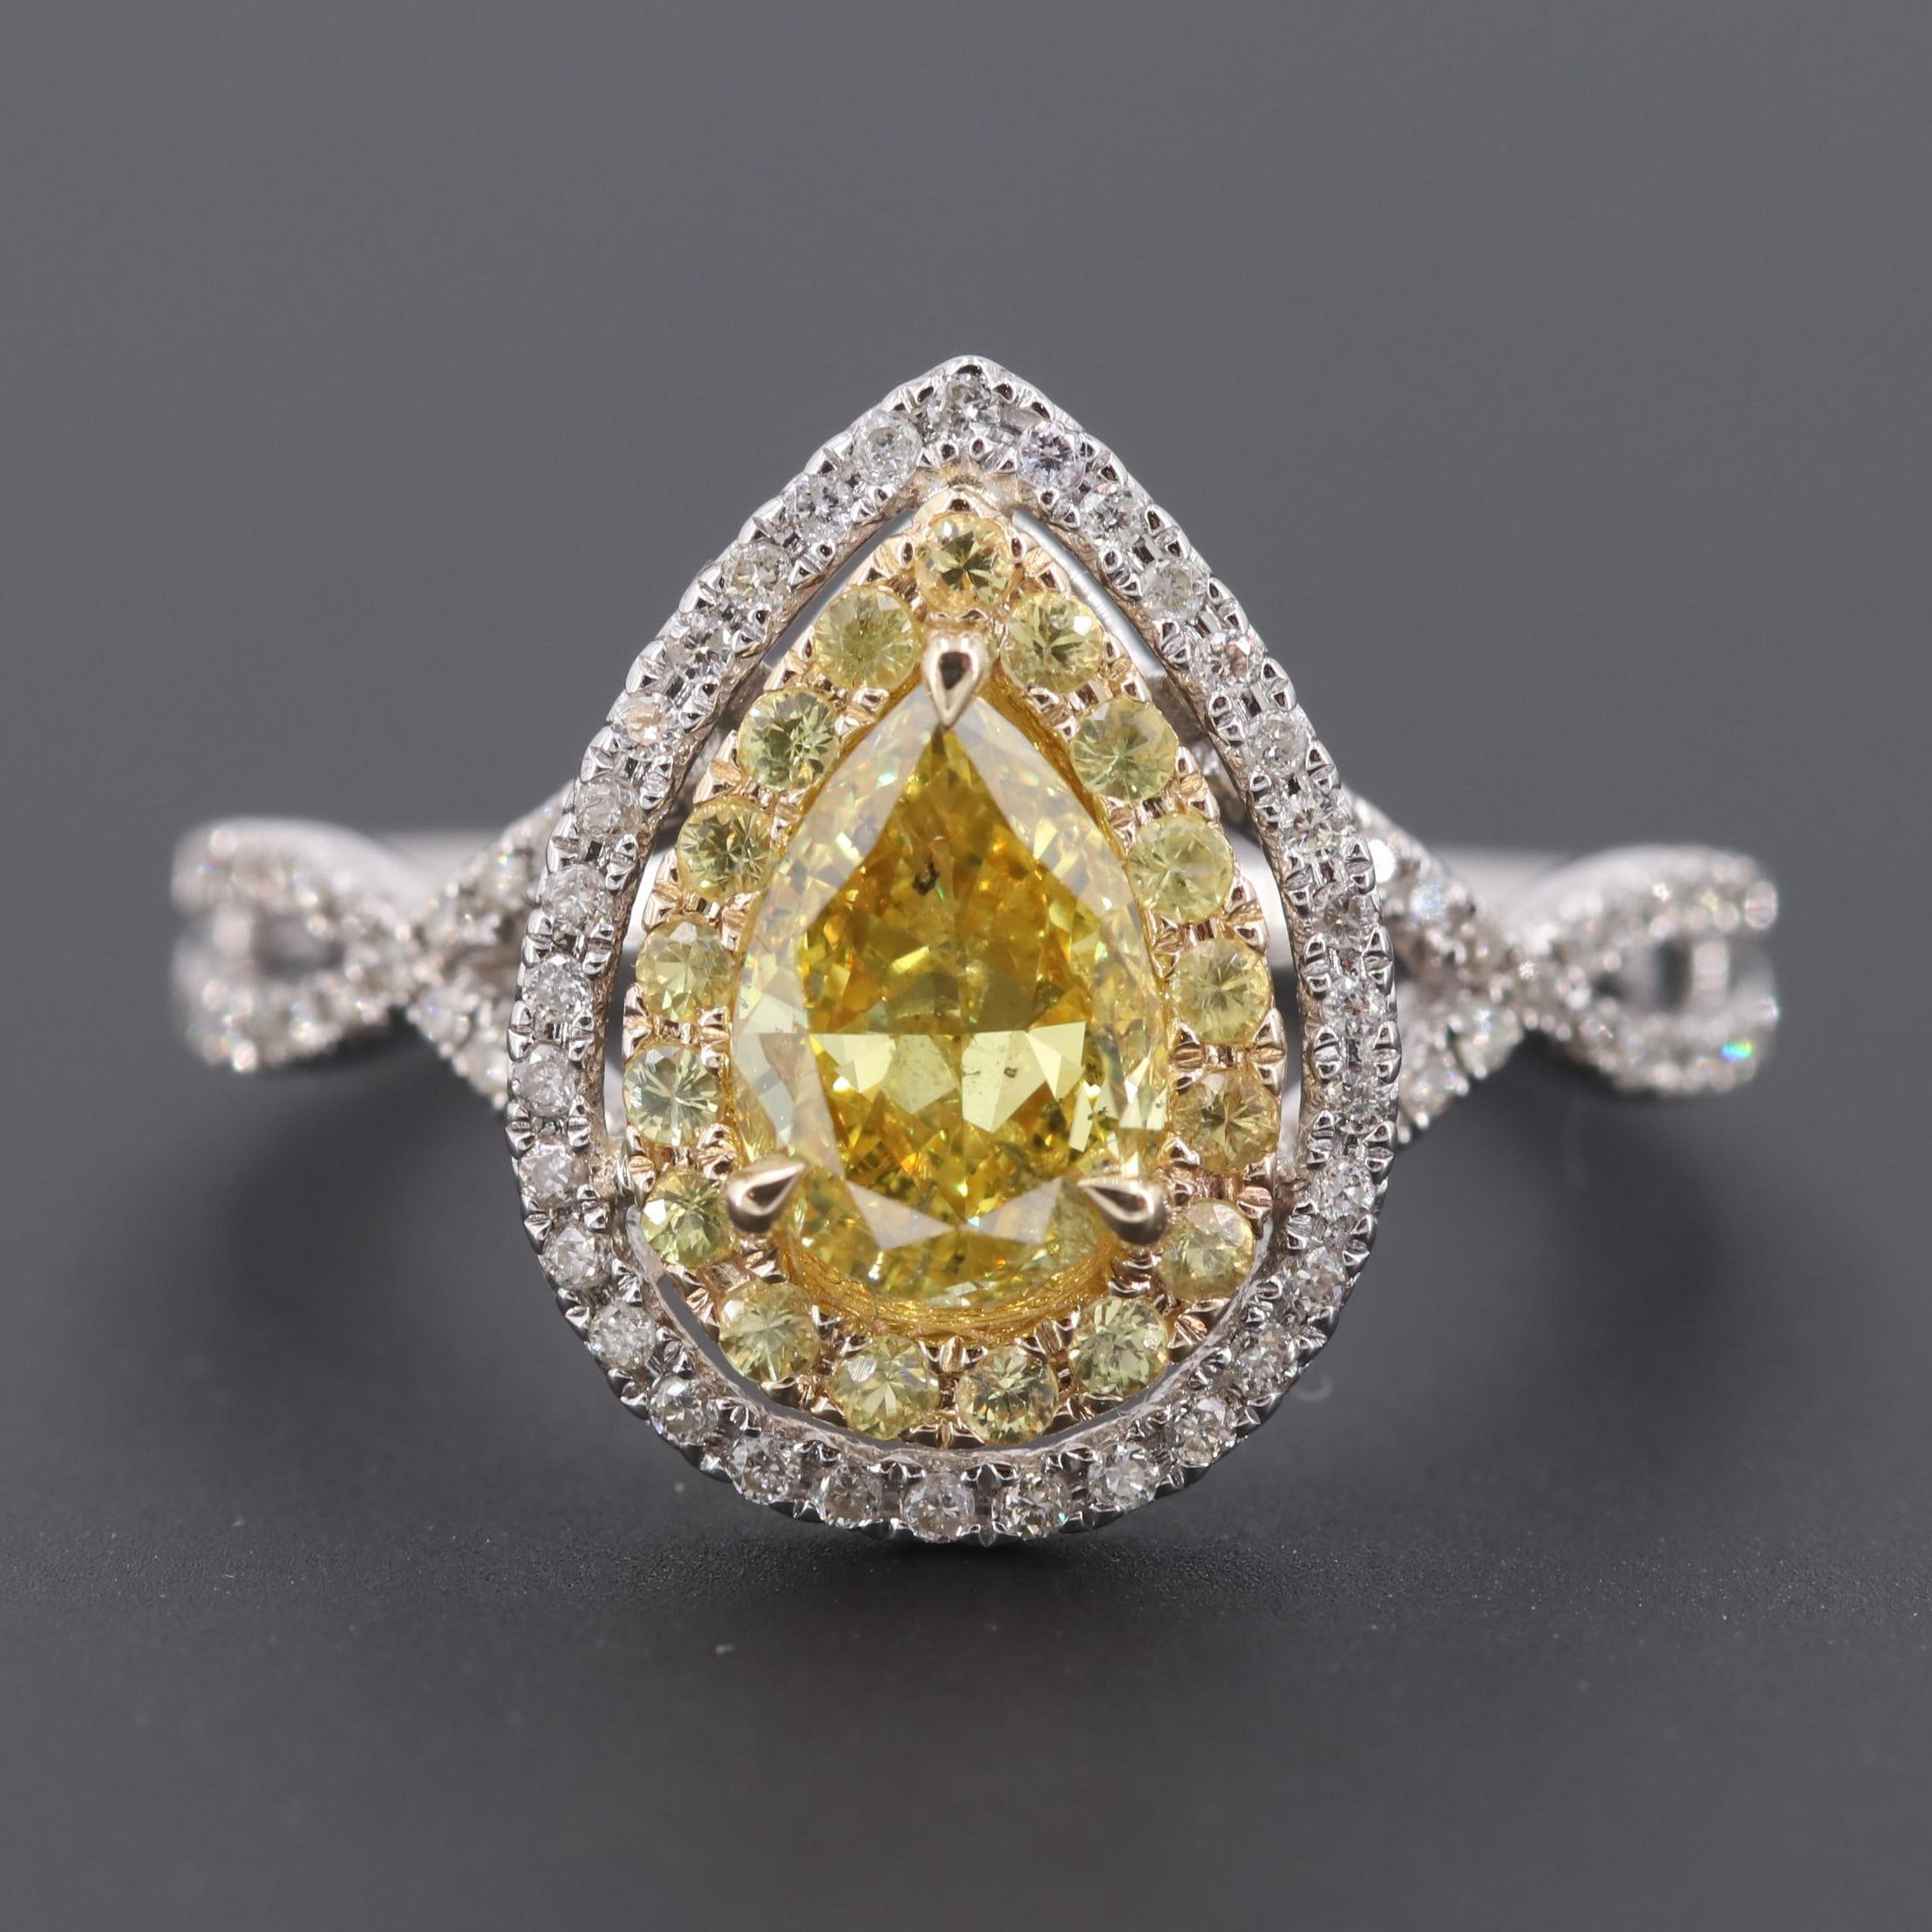 14K White Gold 1.28 CTW Diamond and Yellow Sapphire Ring with GIA Report